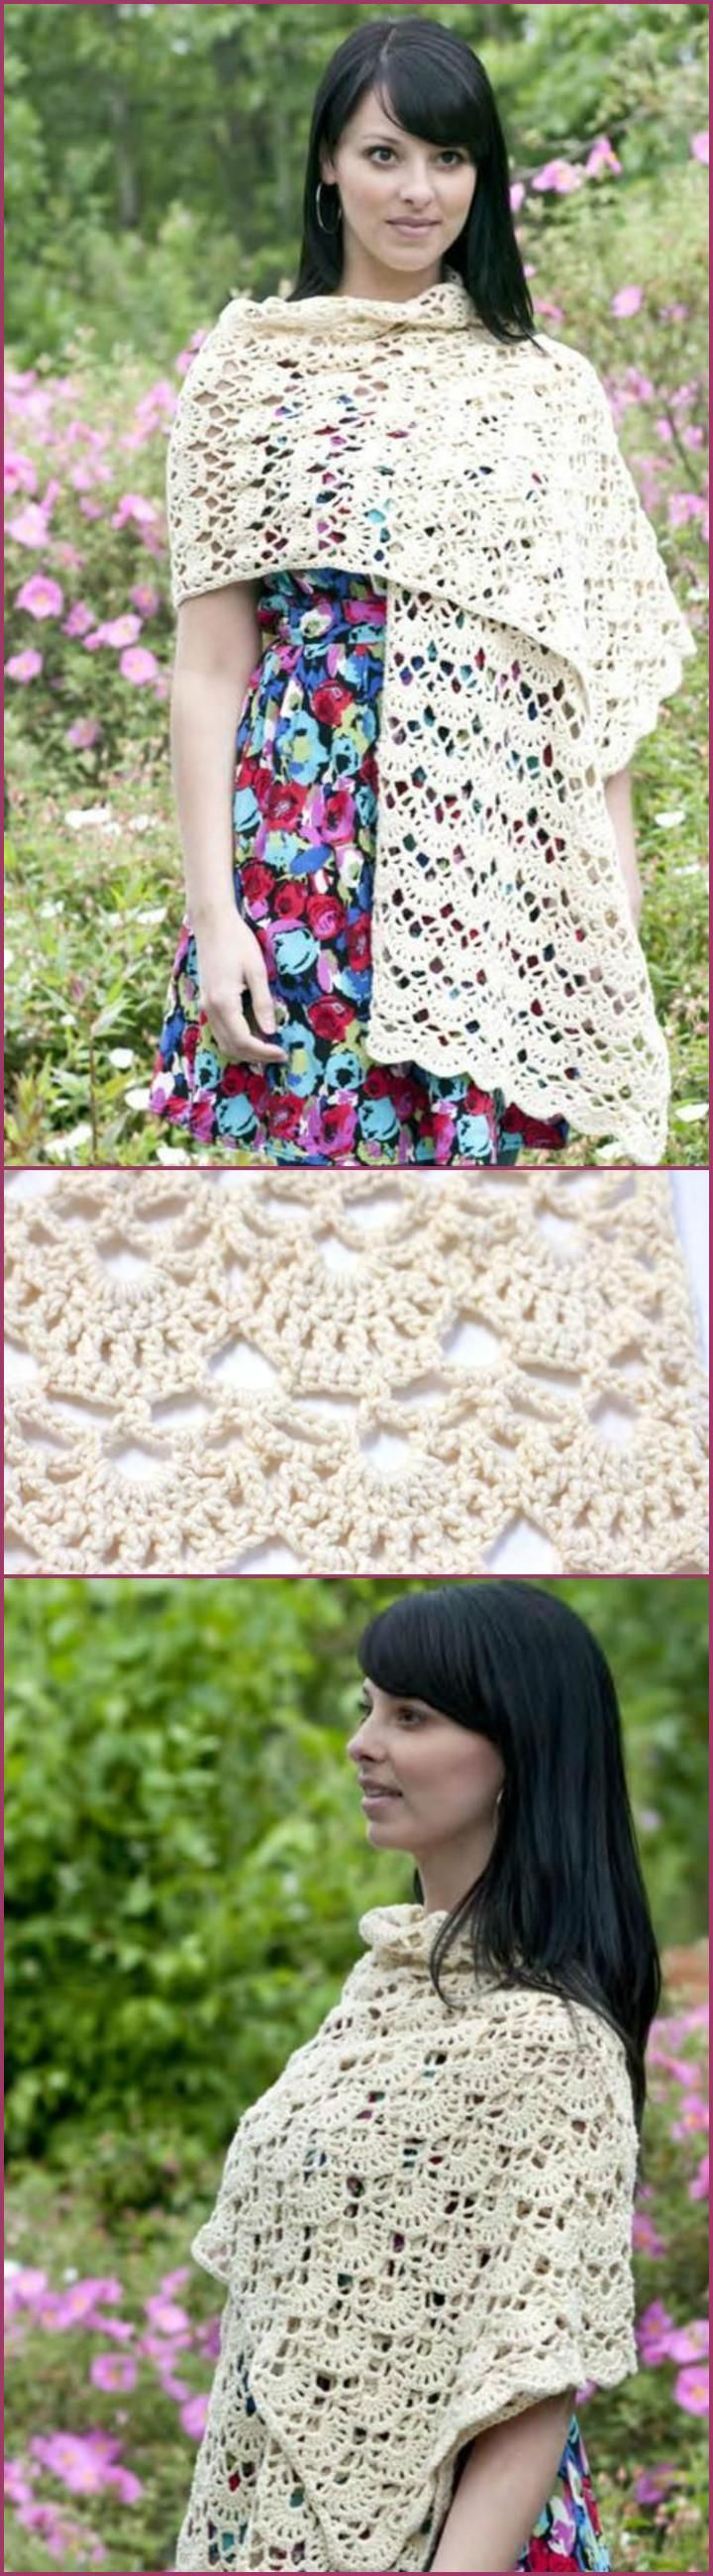 100 Free Crochet Shawl Patterns - Free Crochet Patterns - Page 2 of 19 - DIY & Crafts